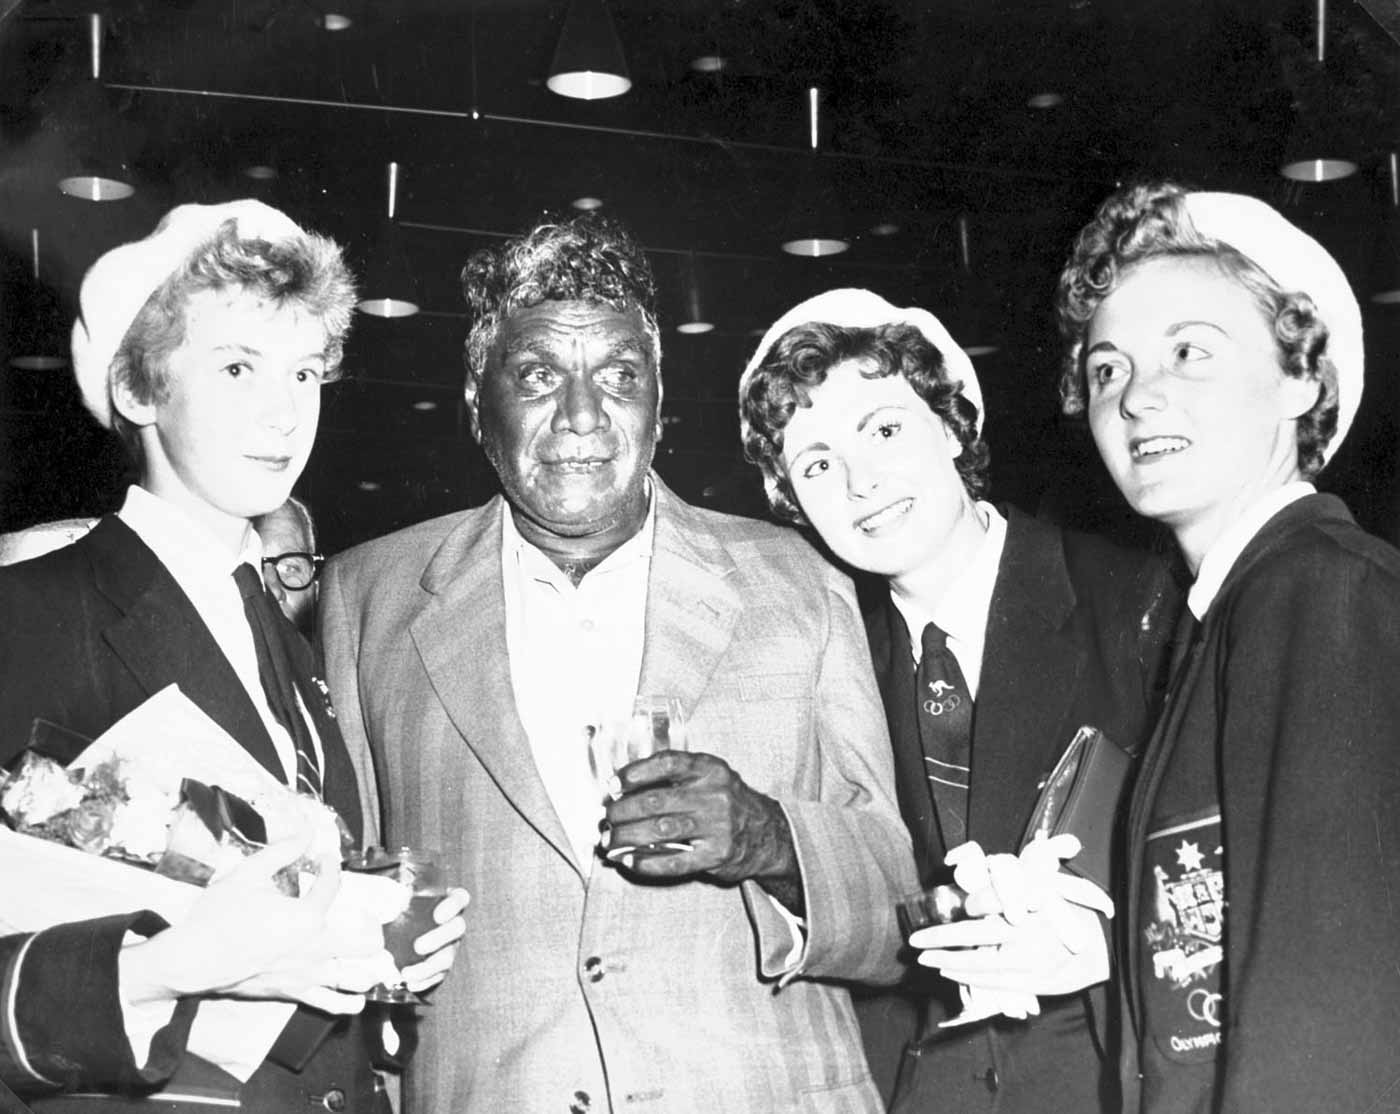 Left to right: Betty Cuthbert, Albert Namatjira, Marlene Mathews and Gloria Cook. - click to view larger image